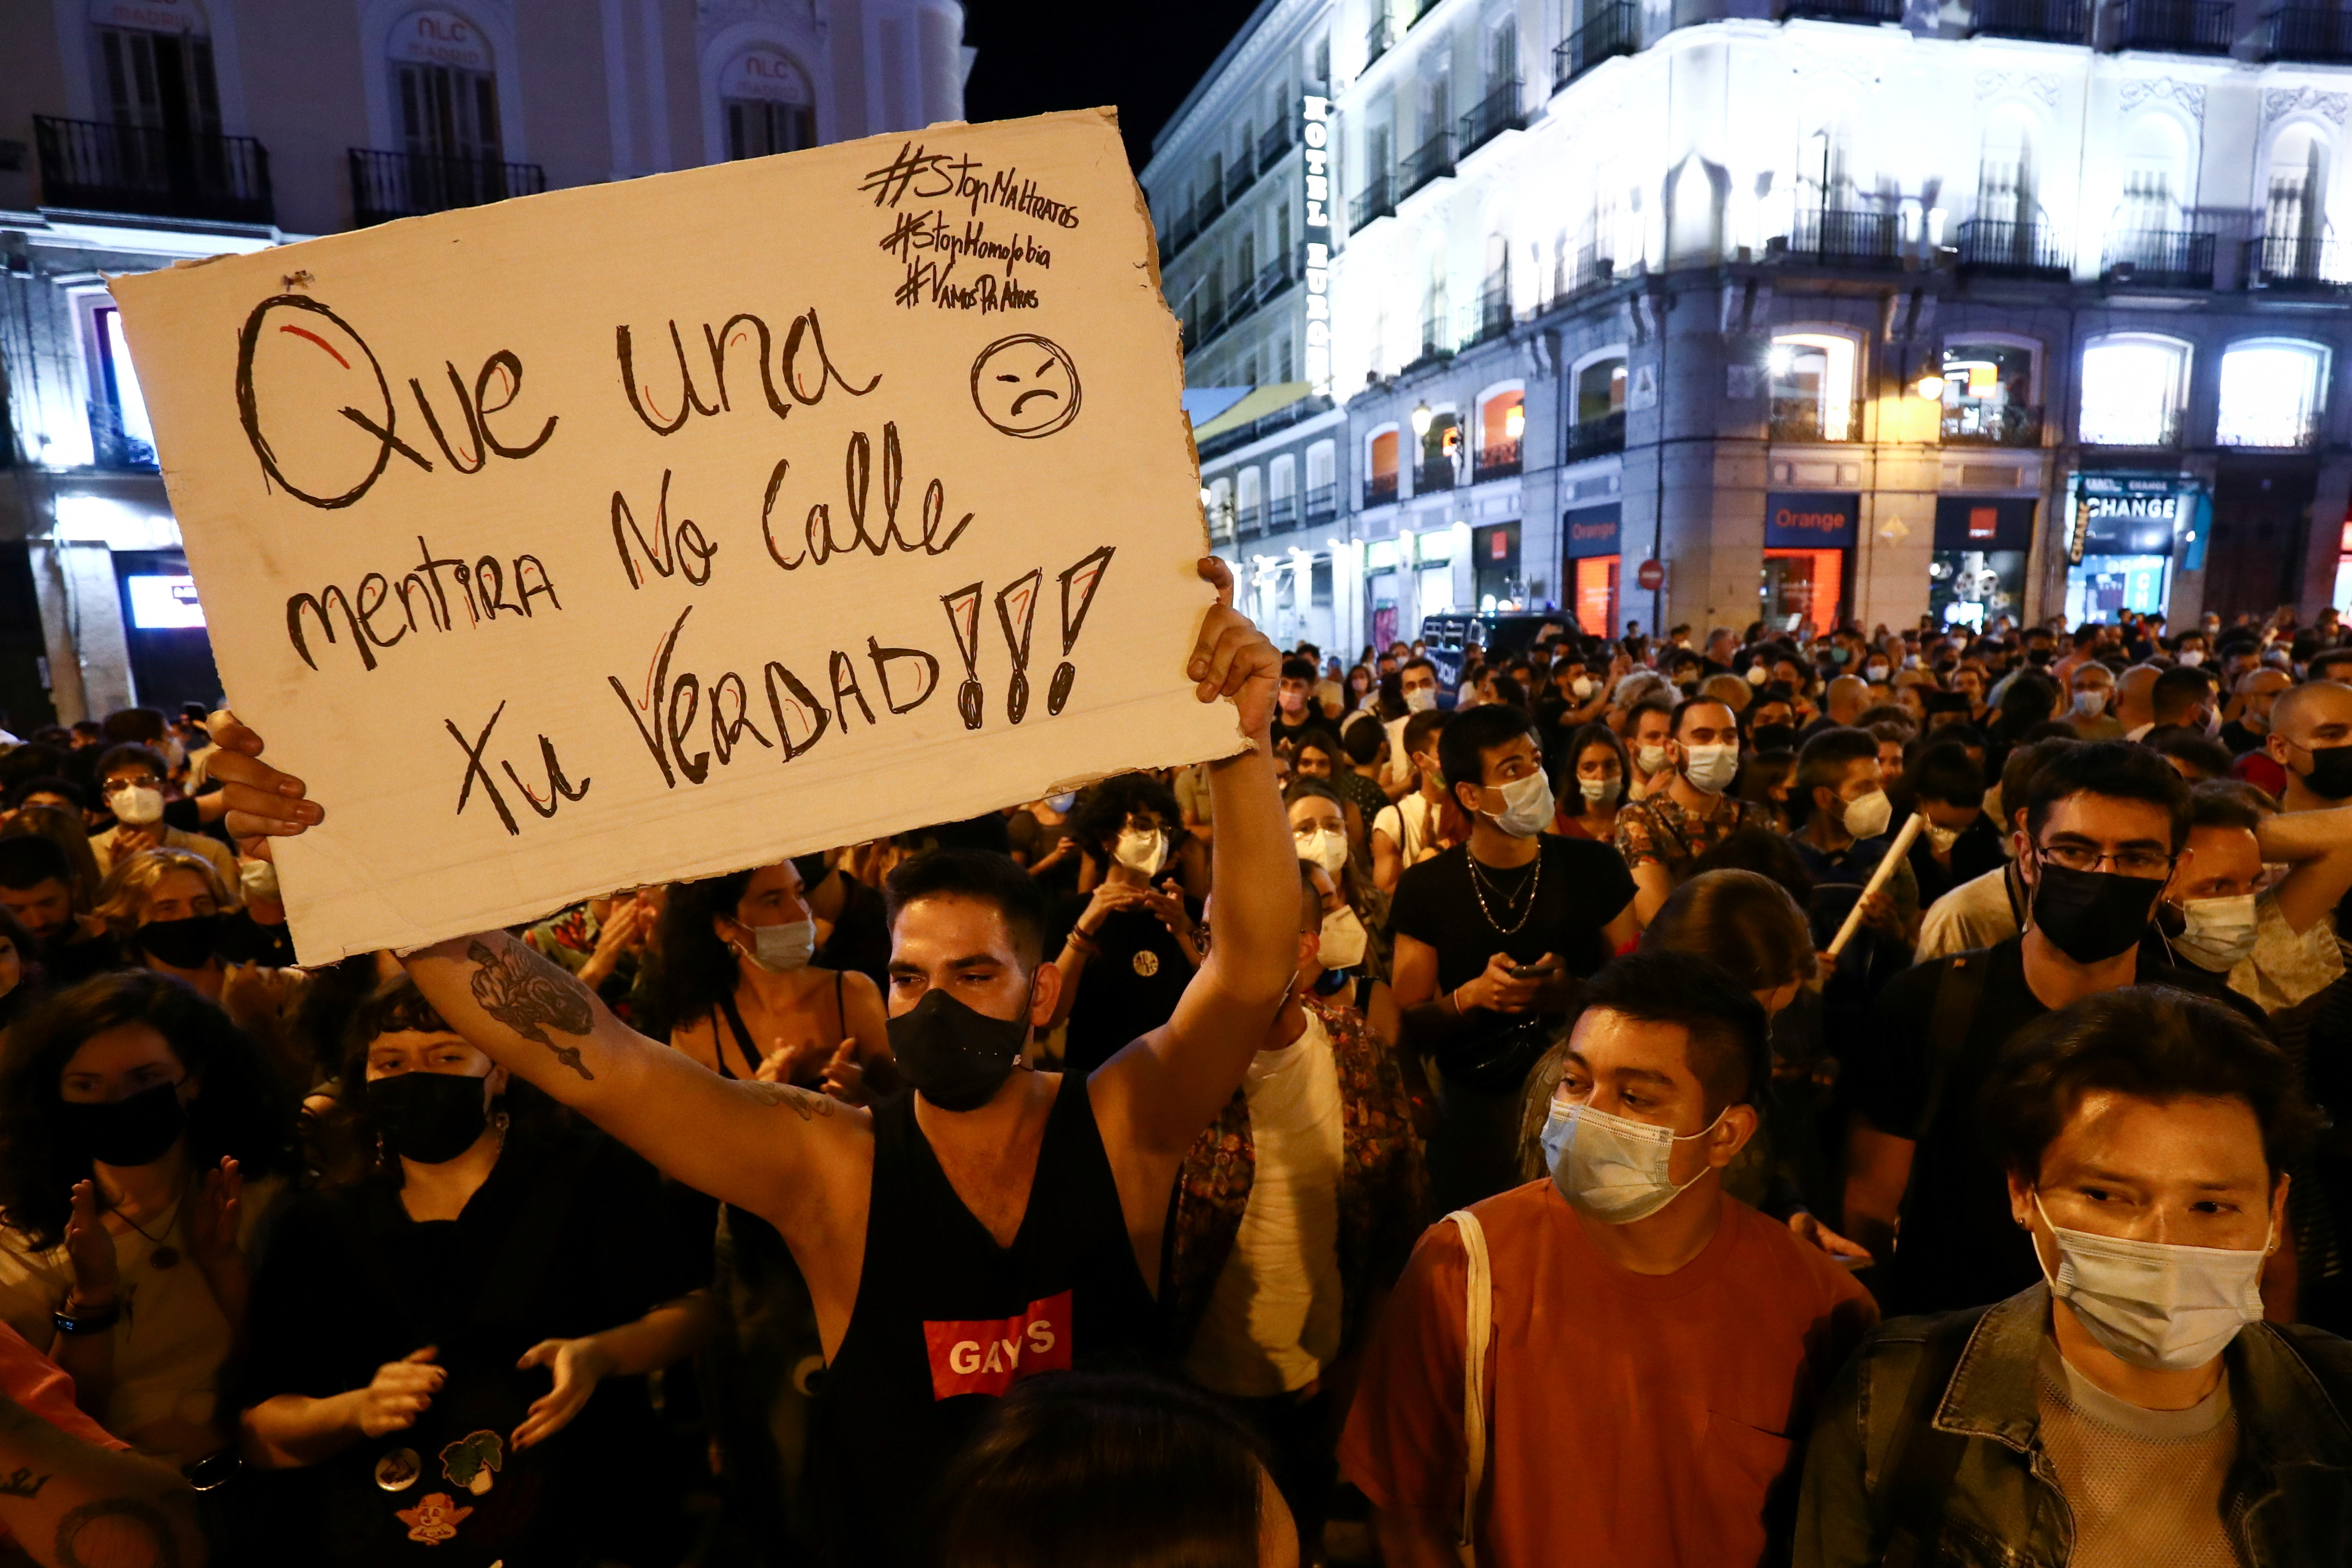 A person holds a sign as LGBTIQ activists and supporters protest against homophobic crimes, at Puerta del Sol square in Madrid, Spain, September 8, 2021. The sign reads 'Don't let a lie shut up your truth'. REUTERS/Sergio Perez